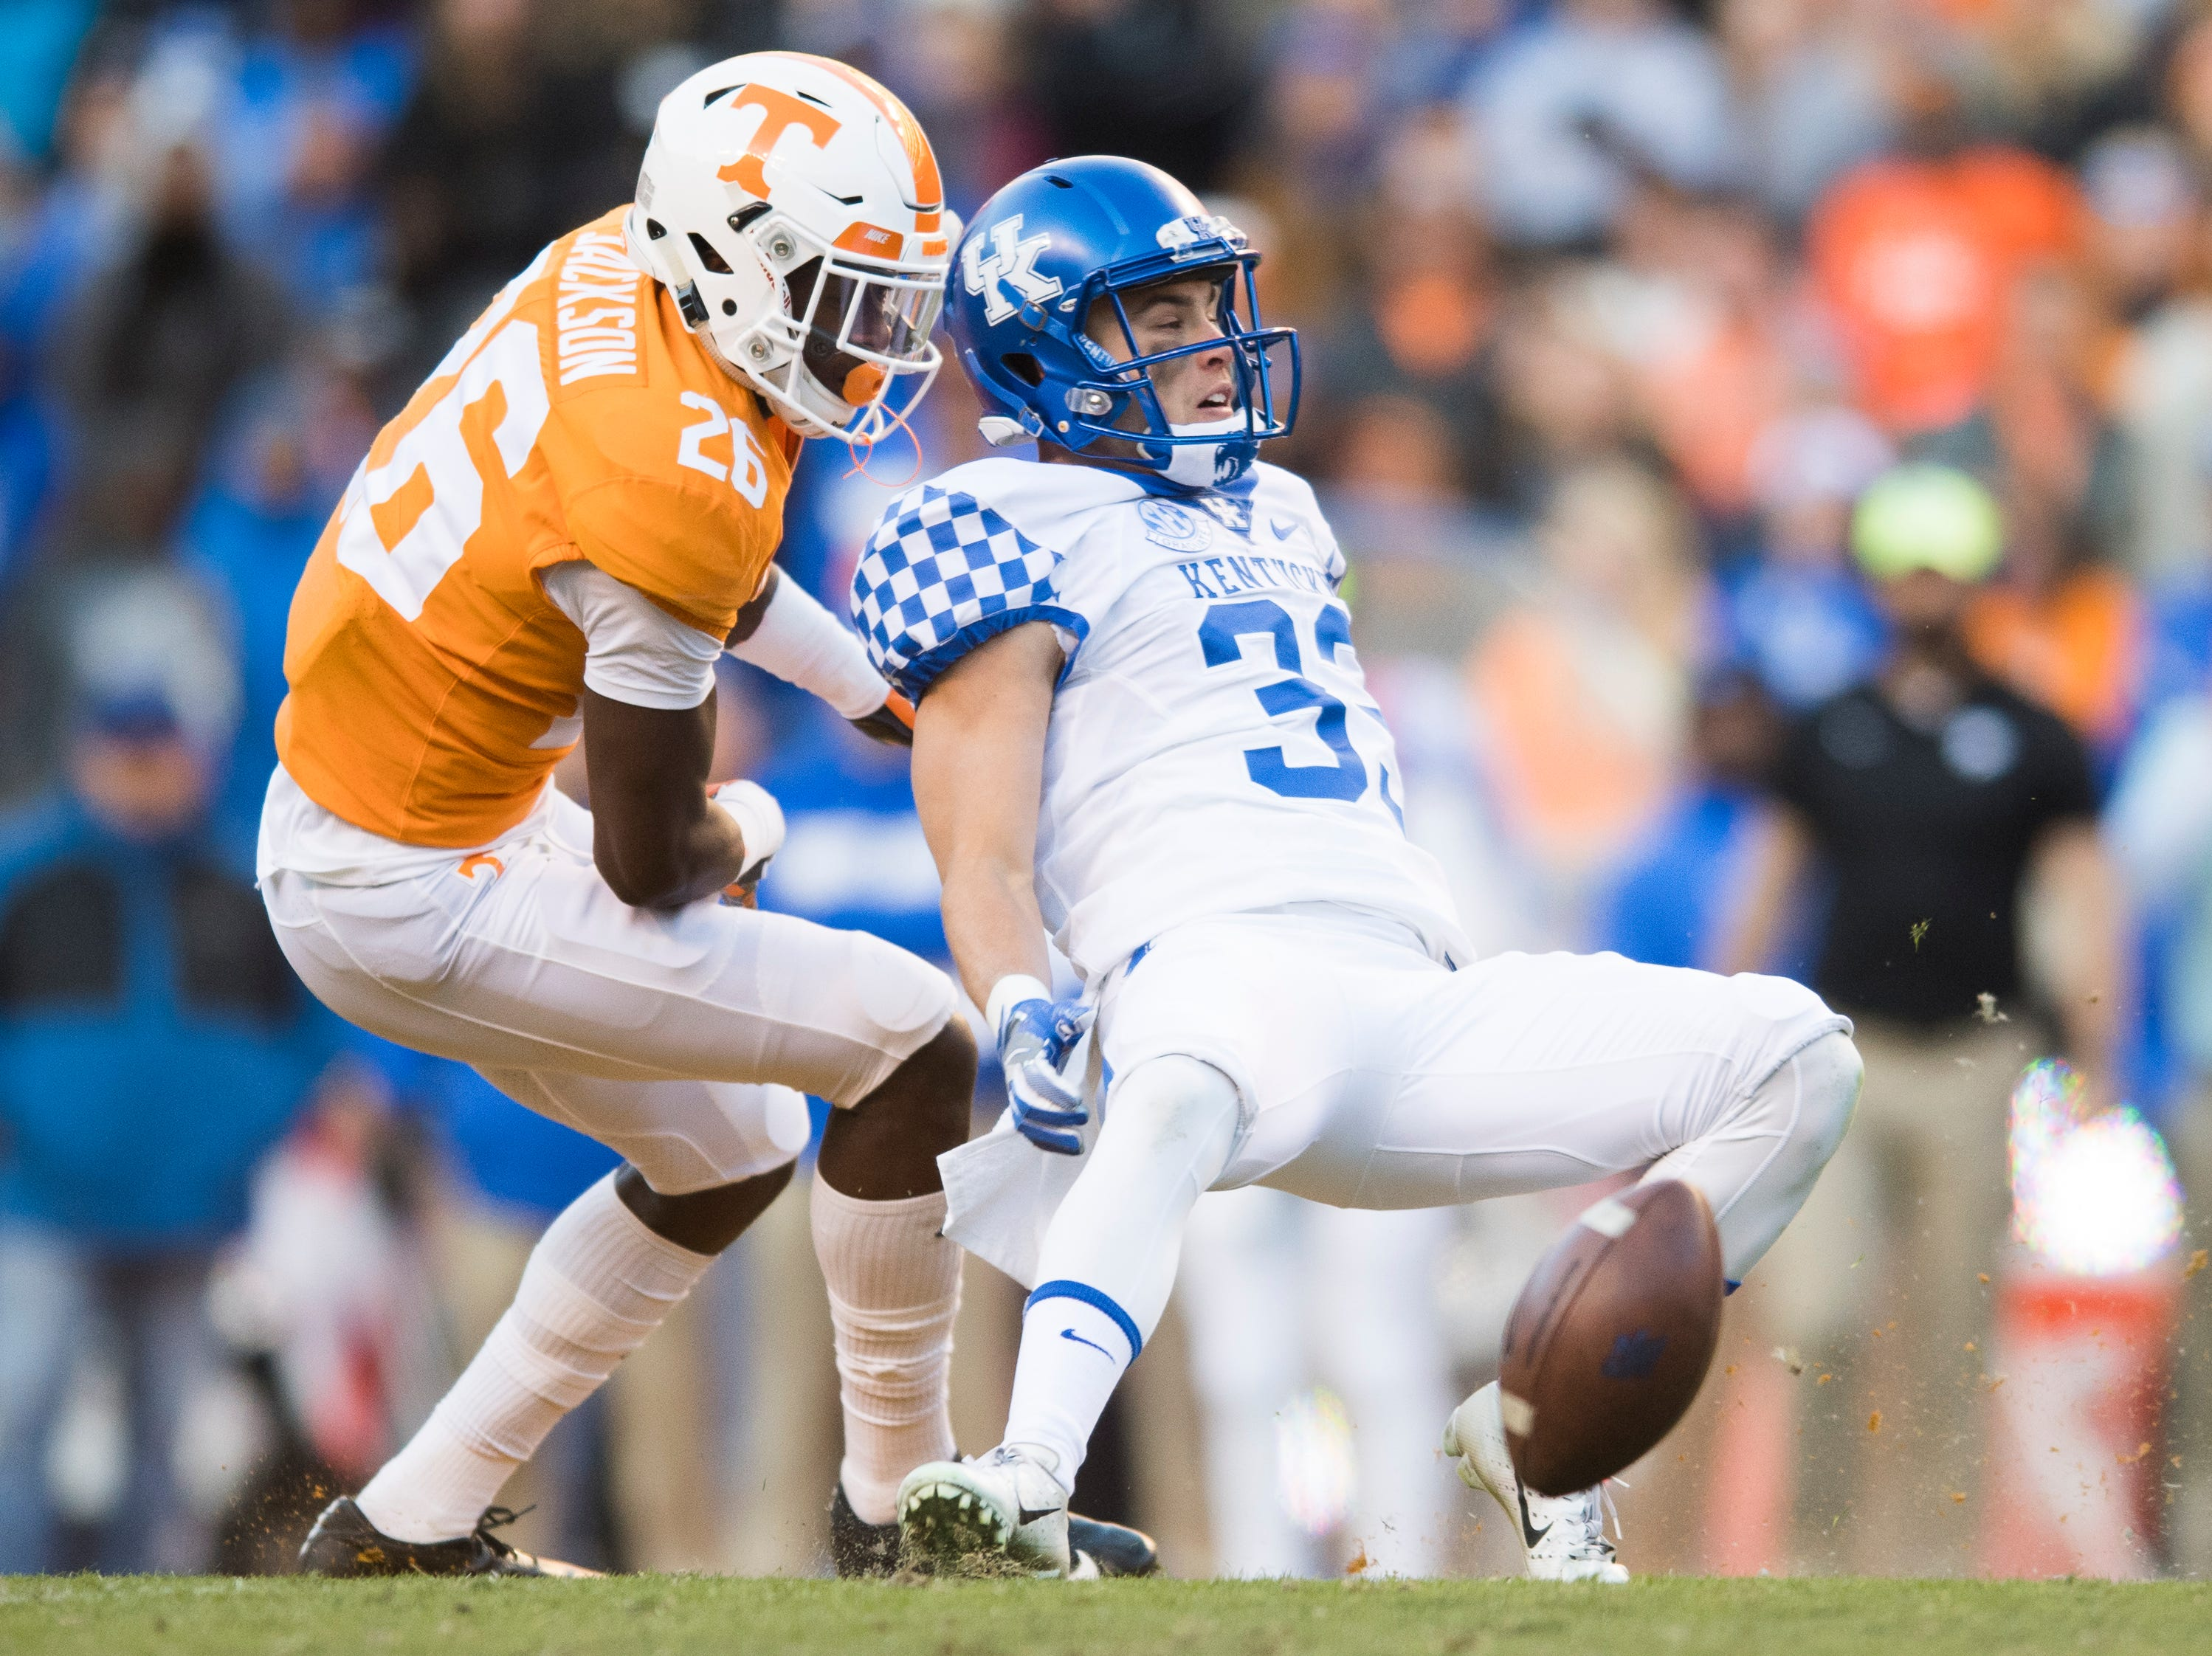 Kentucky wide receiver David Bouvier (33) is denied the pass by Tennessee defensive back Theo Jackson (26) during a game between Tennessee and Kentucky at Neyland Stadium in Knoxville, Tennessee on Saturday, November 10, 2018.